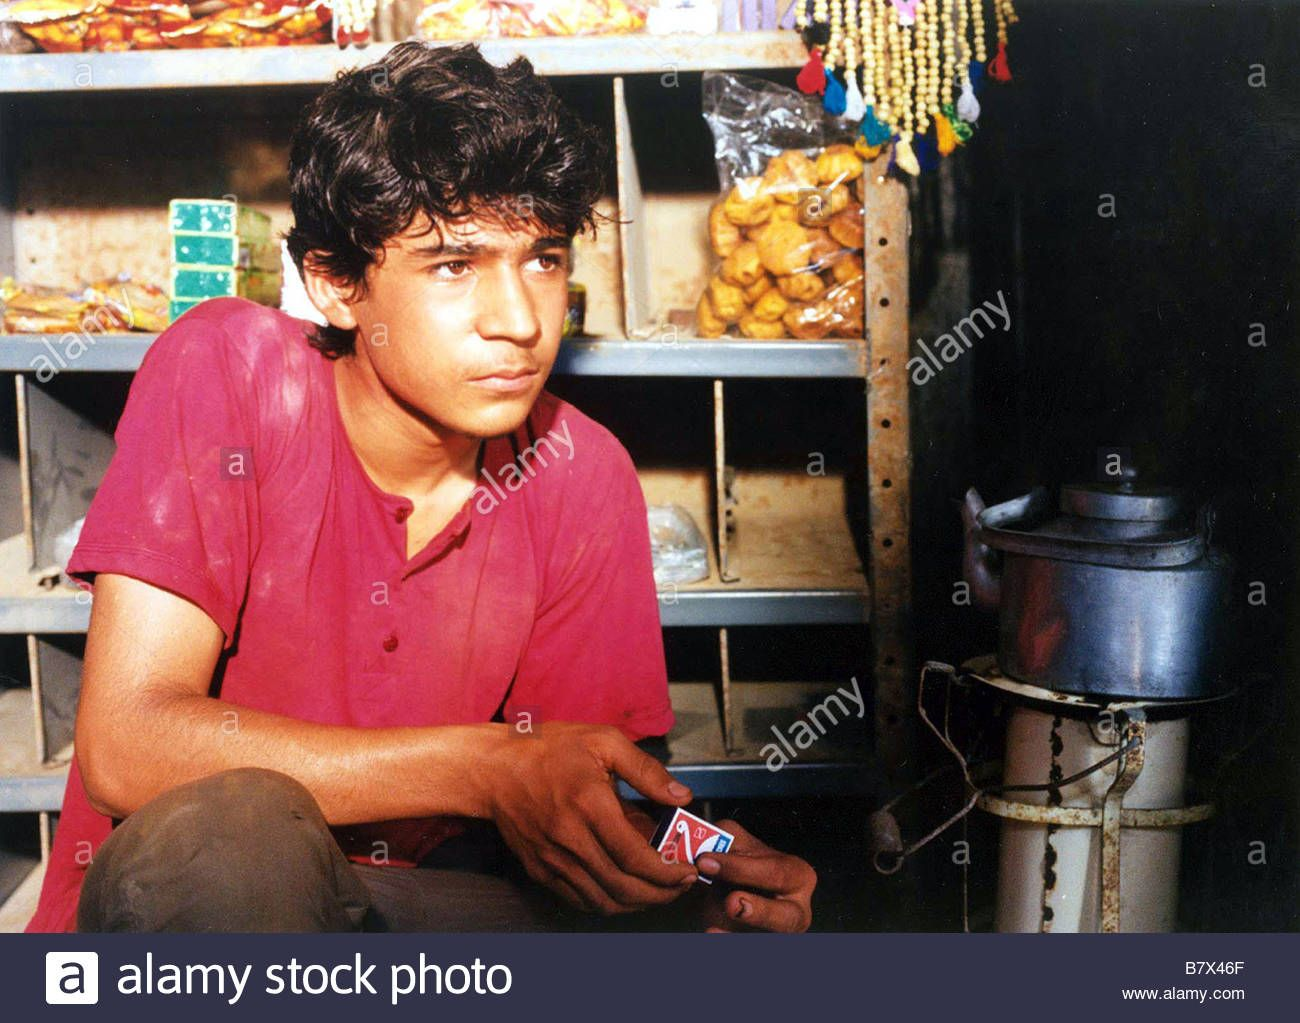 Download this stock image: La vie sur l eau Jazireh ahani Année 2005 Iran Hossein Farzi Zadeh Réalisateur Mohammad Rasoulof - B7X46F from Alamy's library of millions of high resolution stock photos, illustrations and vectors.